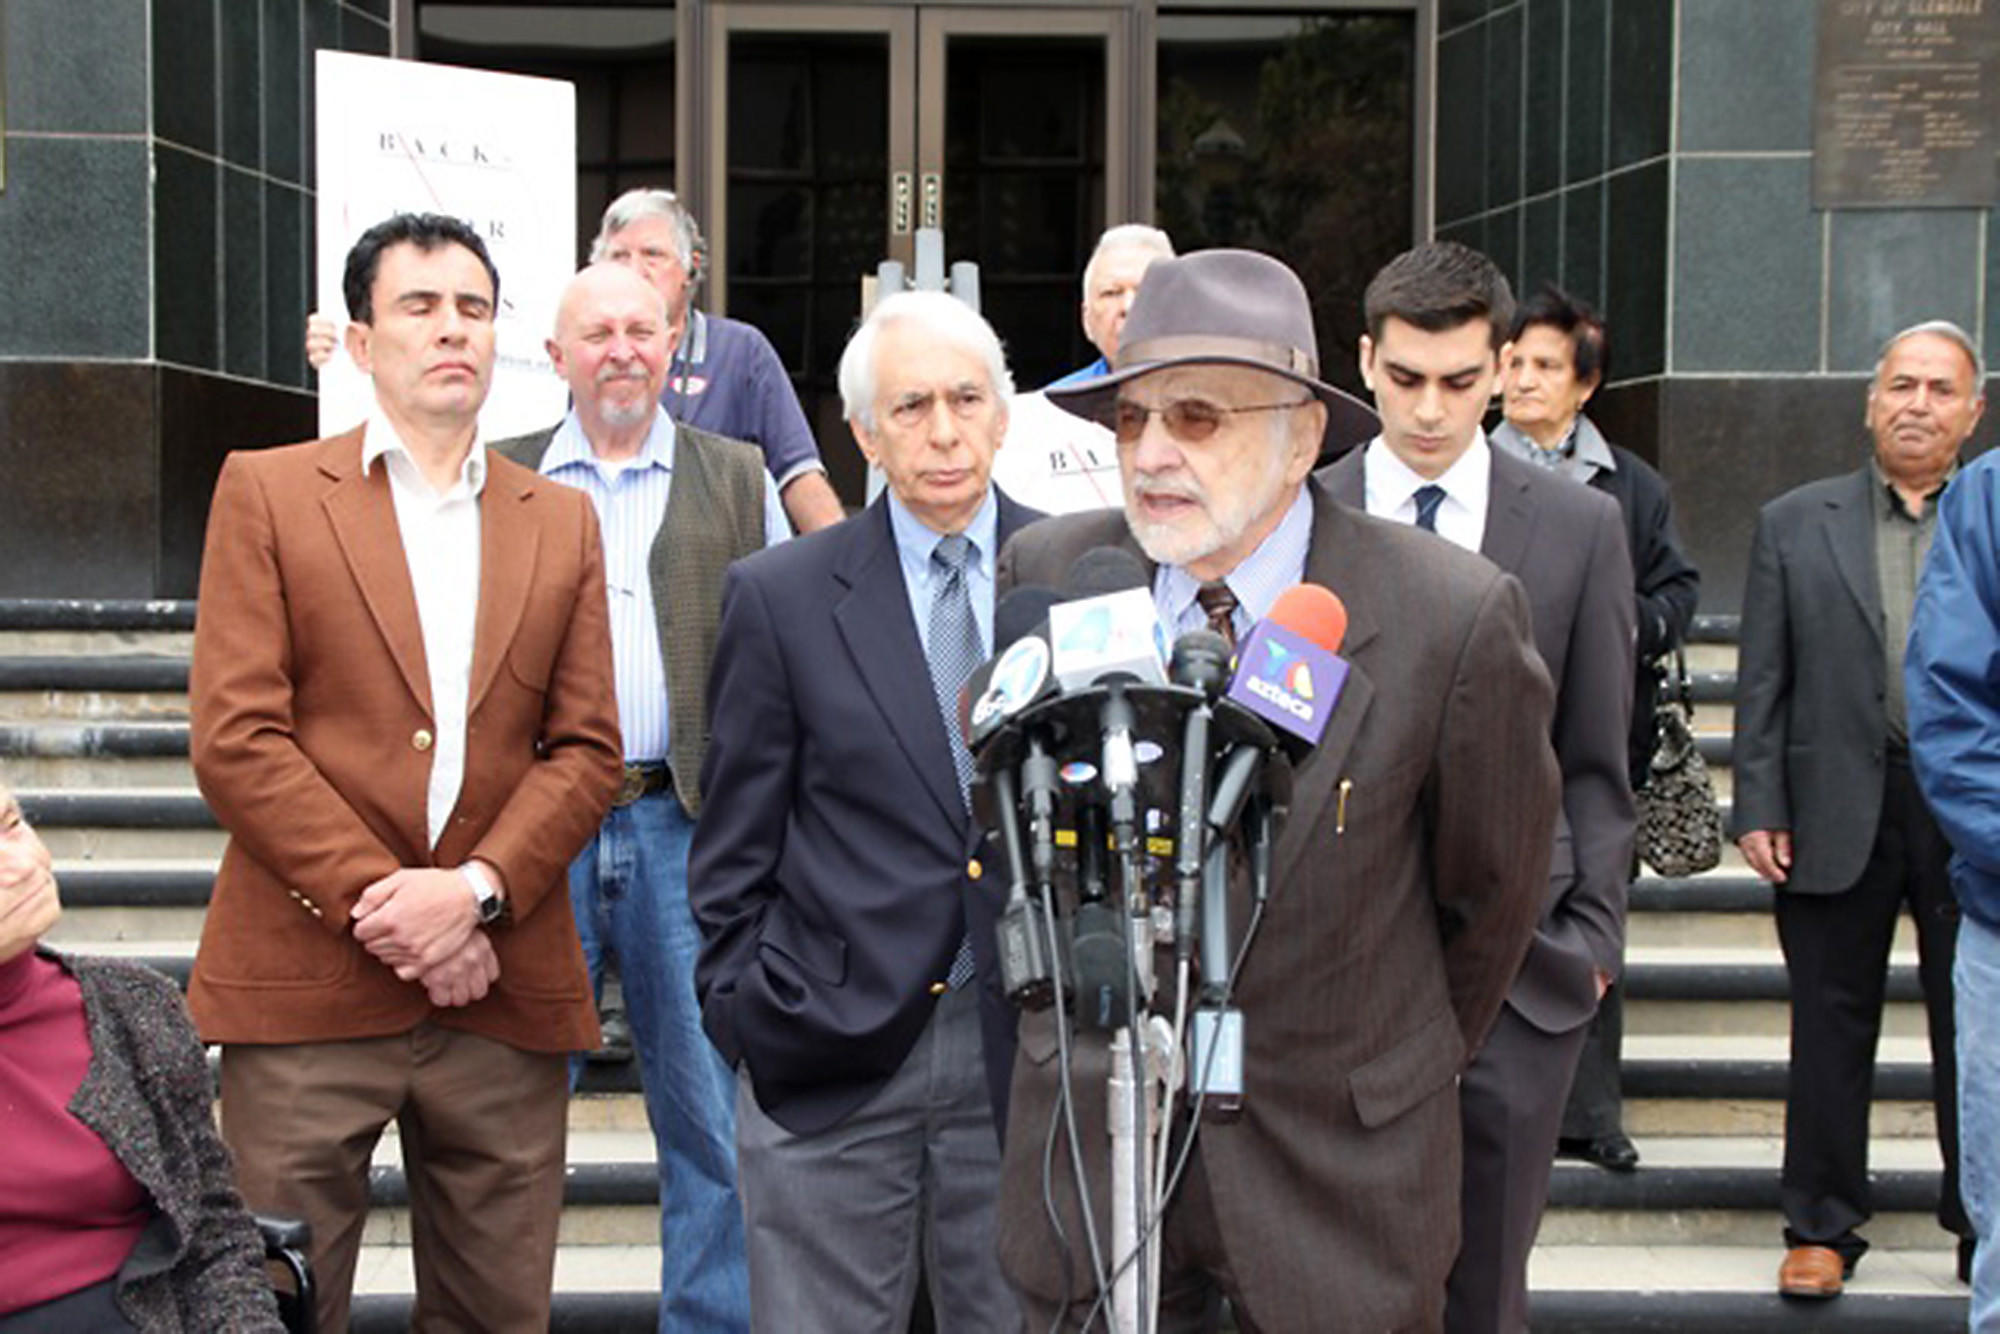 Harry Zavos, a board member of the Glendale Coalition for Better Government, the organization that is suing the city over money transfers, speaks out at a Wednesday press conference.